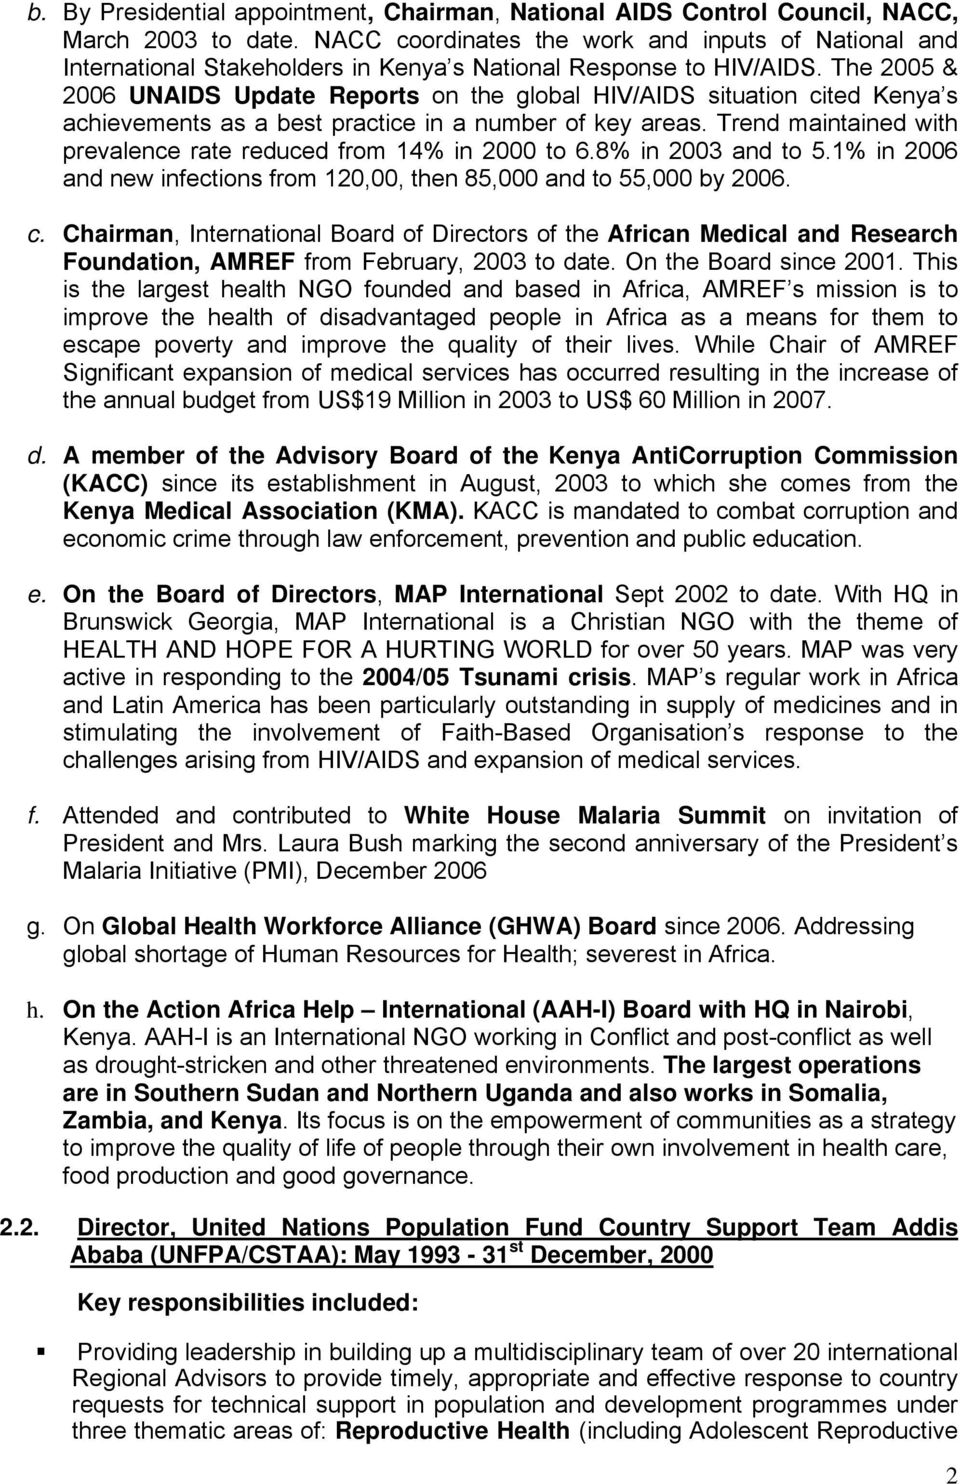 The 2005 & 2006 UNAIDS Update Reports on the global HIV/AIDS situation cited Kenya s achievements as a best practice in a number of key areas.